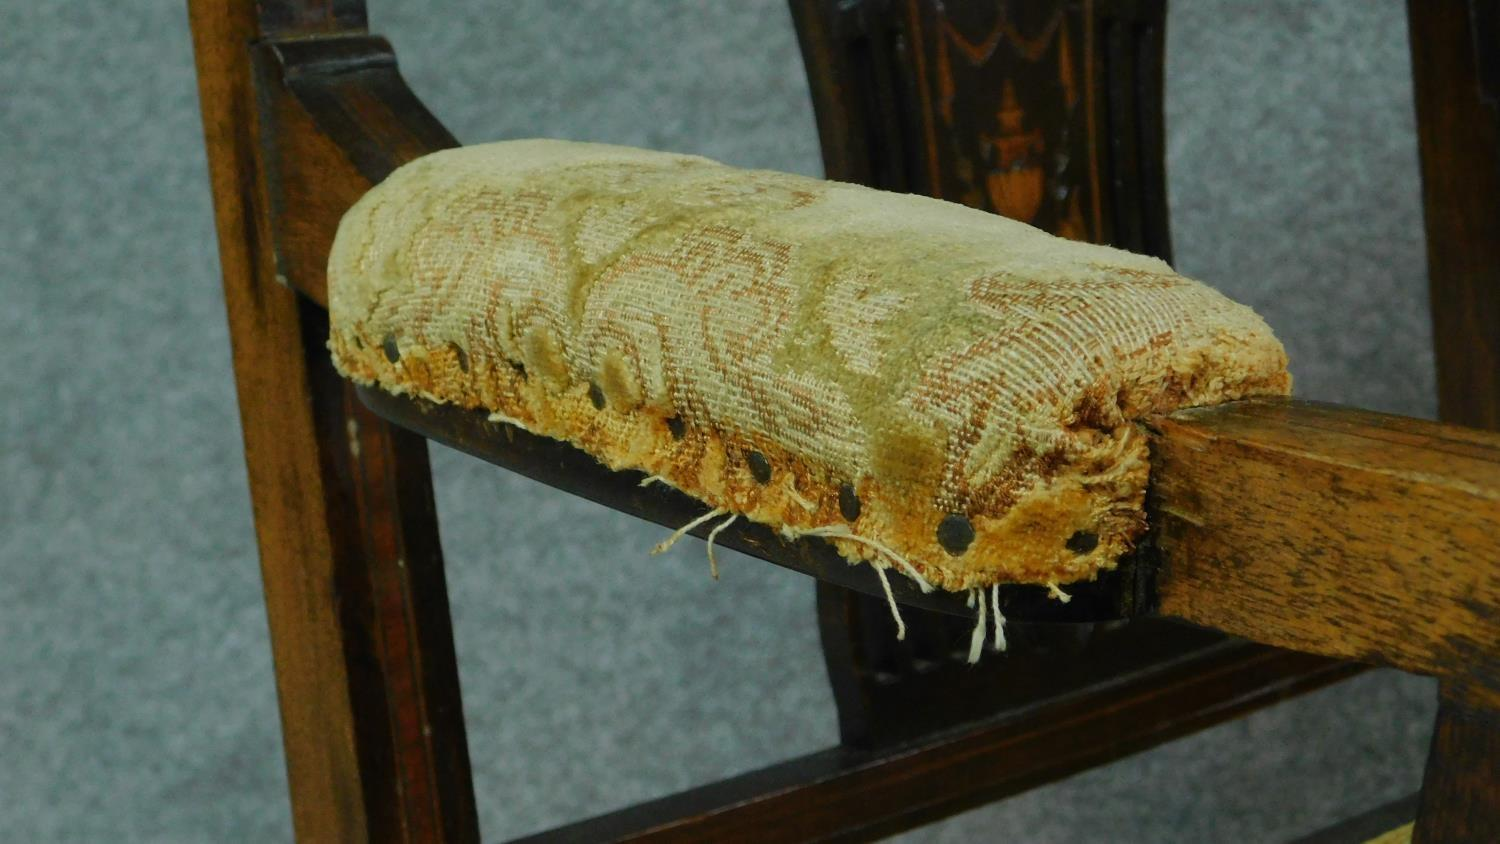 A late Victorian mahogany and satinwood inlaid armchair with urn design to the back, floral - Image 7 of 7